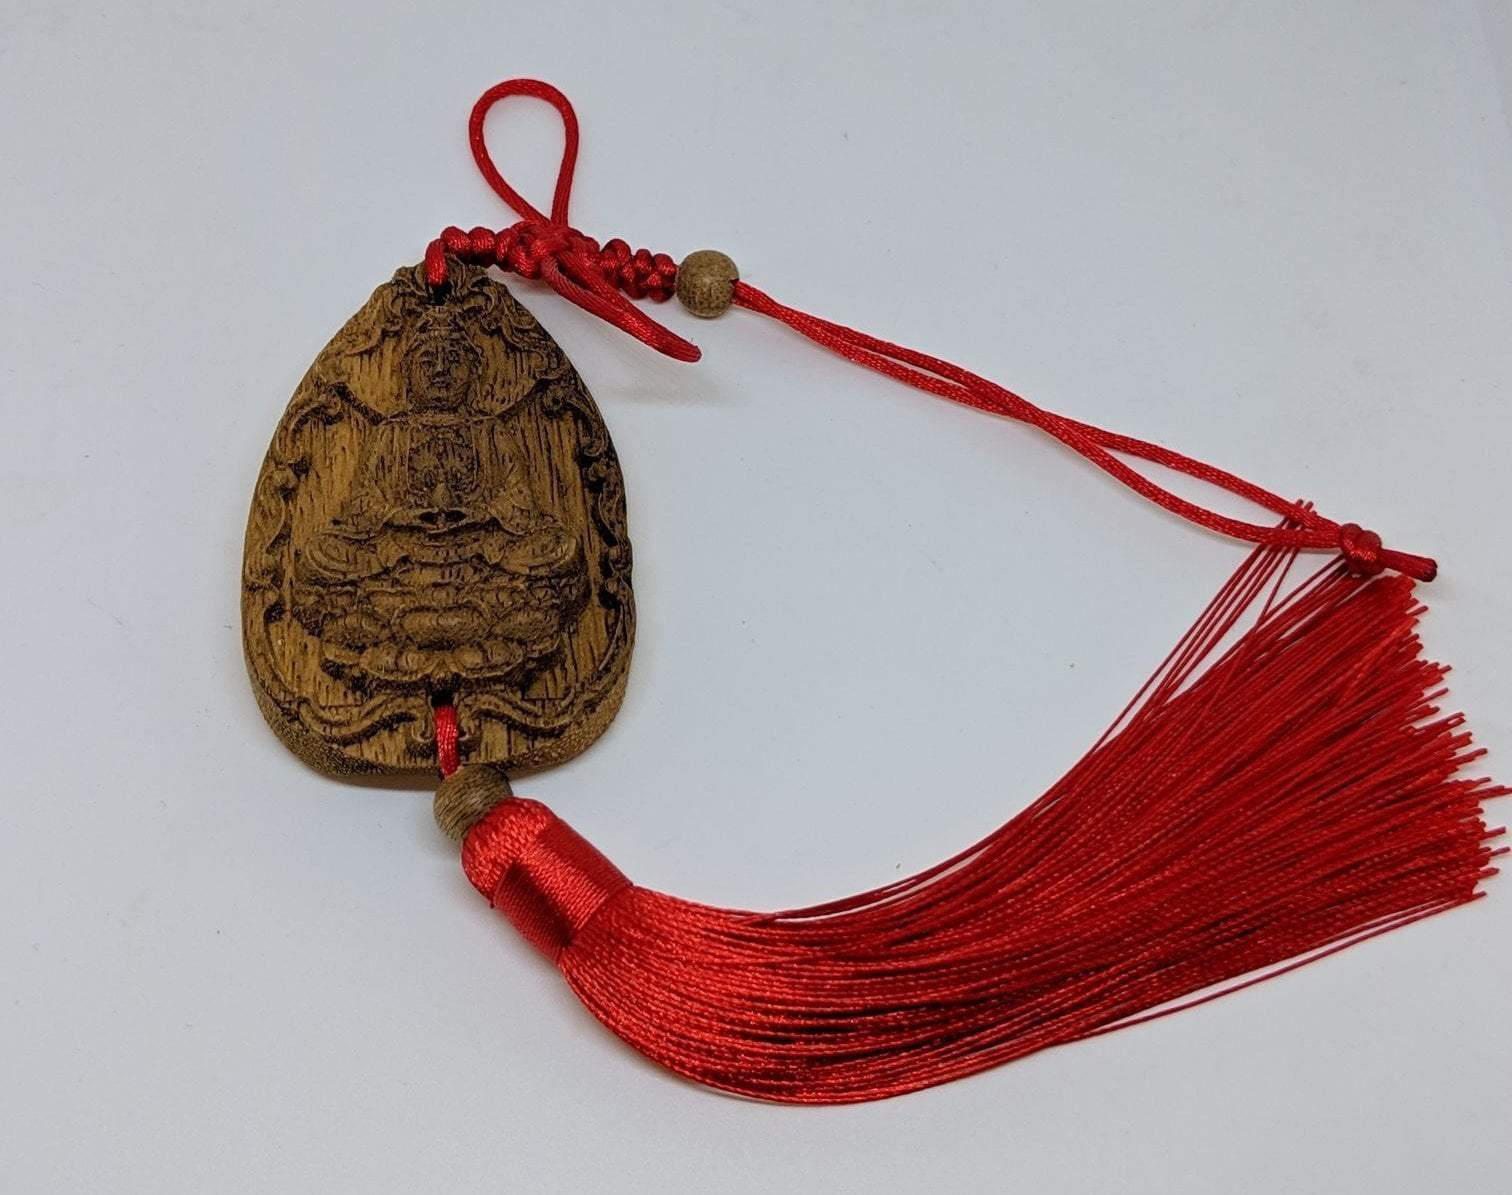 decor Guan Yin Cultivated Agarwood Key Hanger Charm Guan Yin Avalokitesvara, Happy Buddha